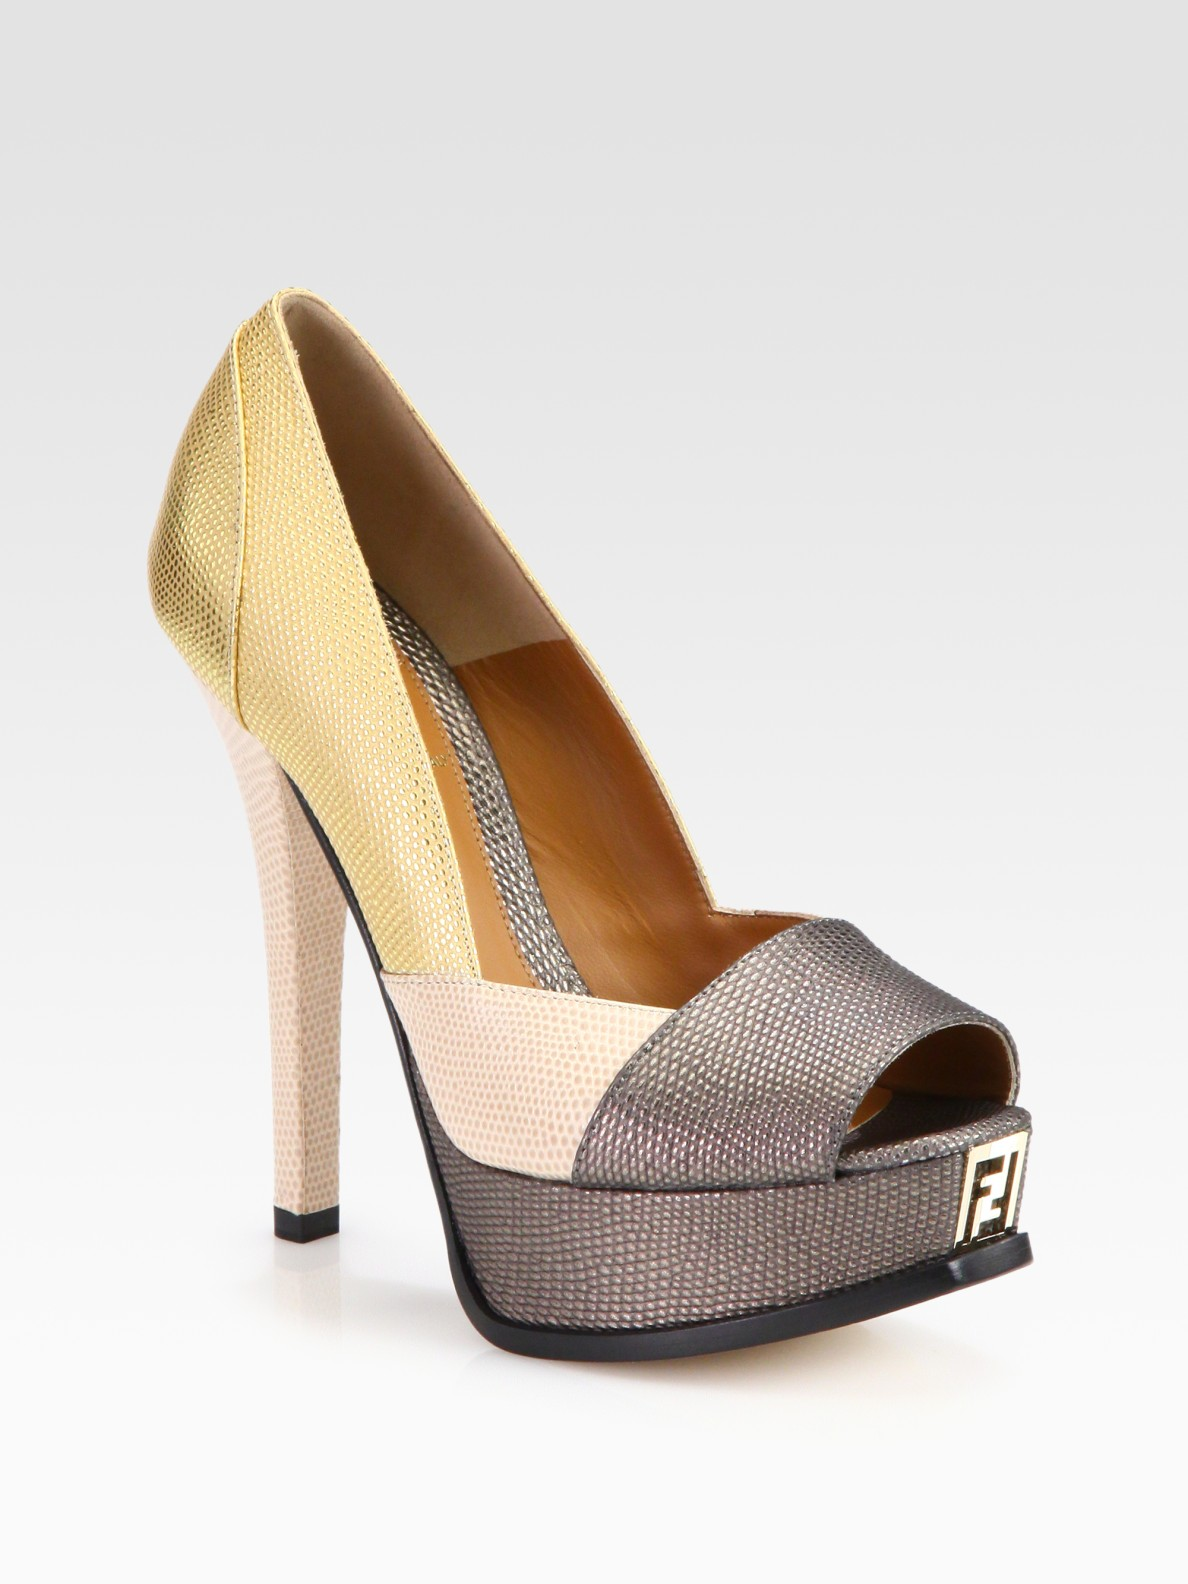 Saks Fifth Brand Shoes